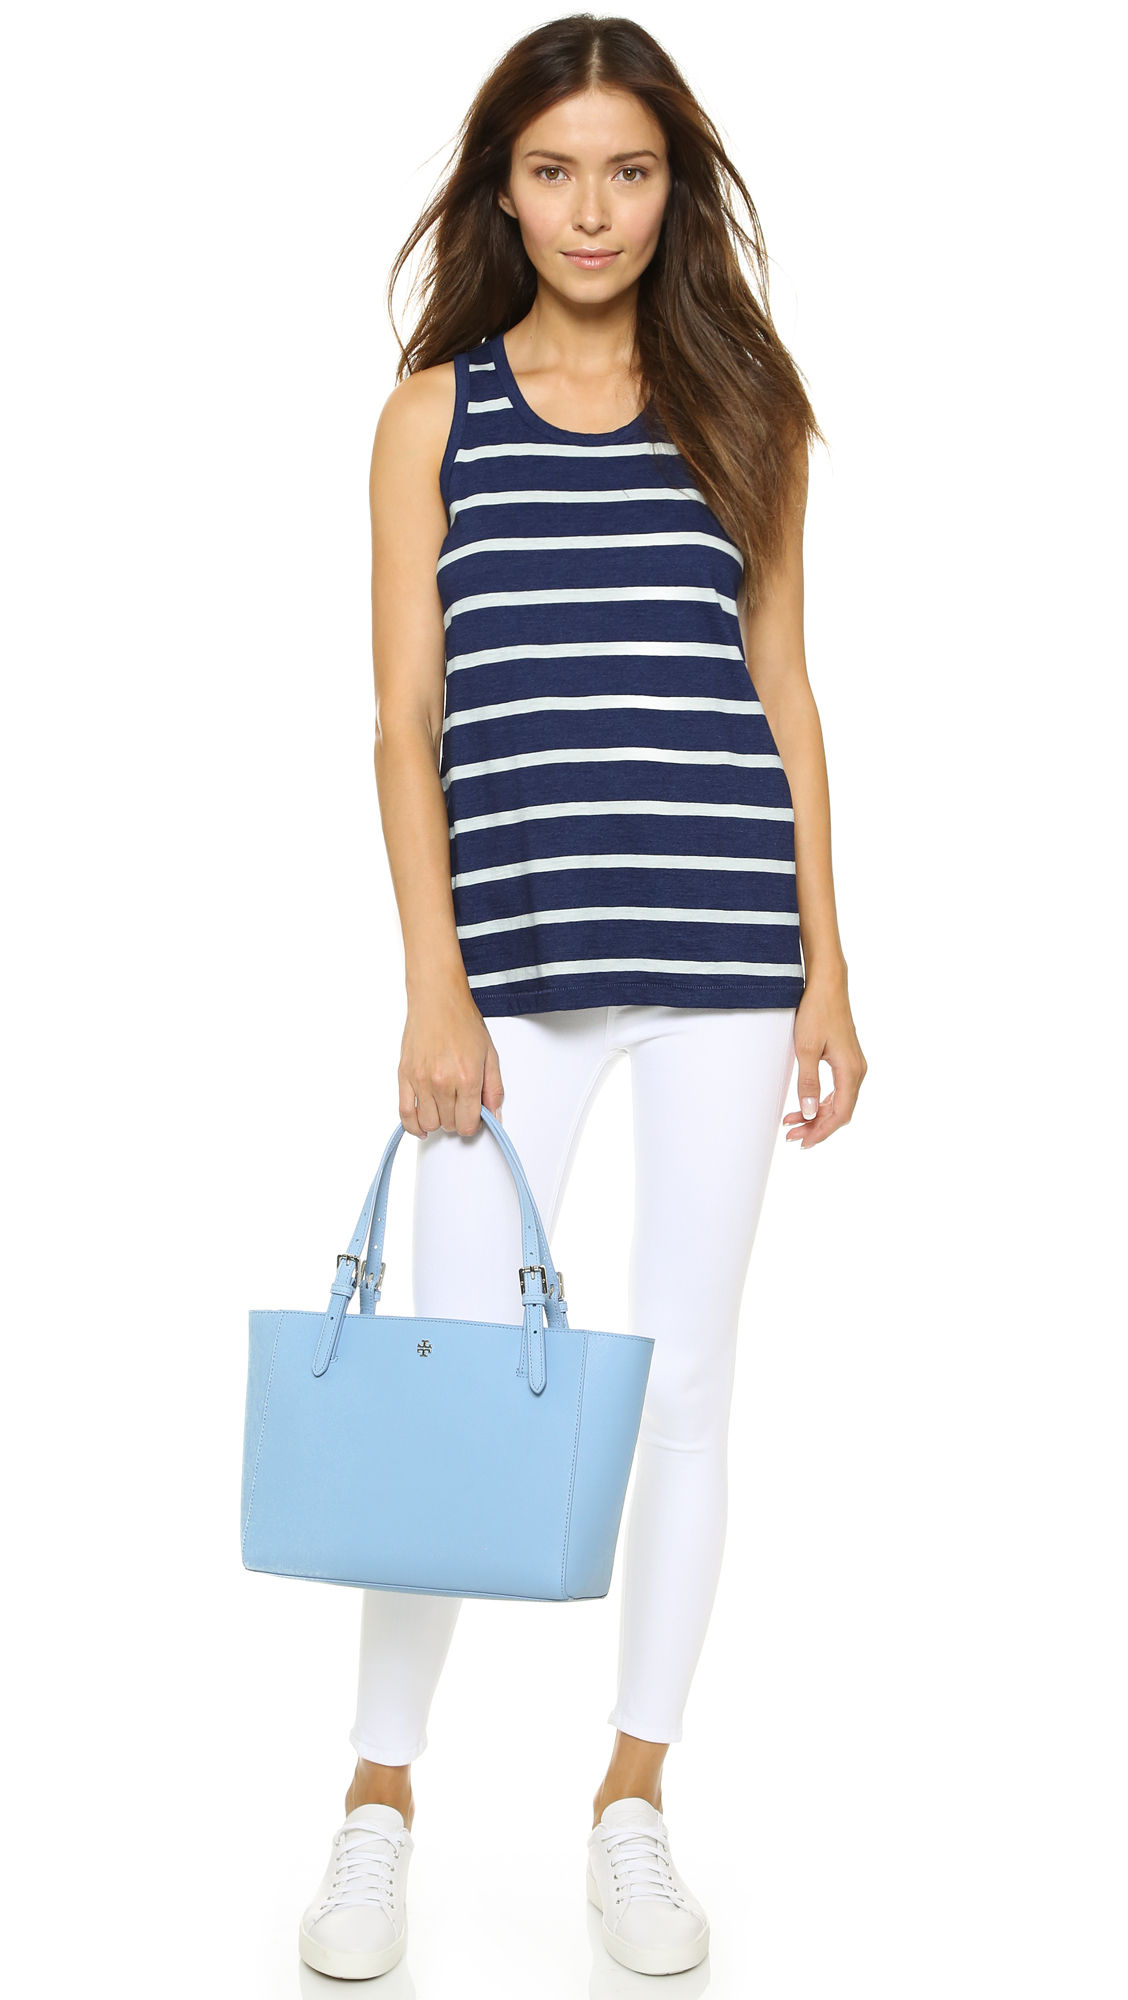 a4720e64b605 Lyst - Tory Burch York Small Buckle Tote in Blue